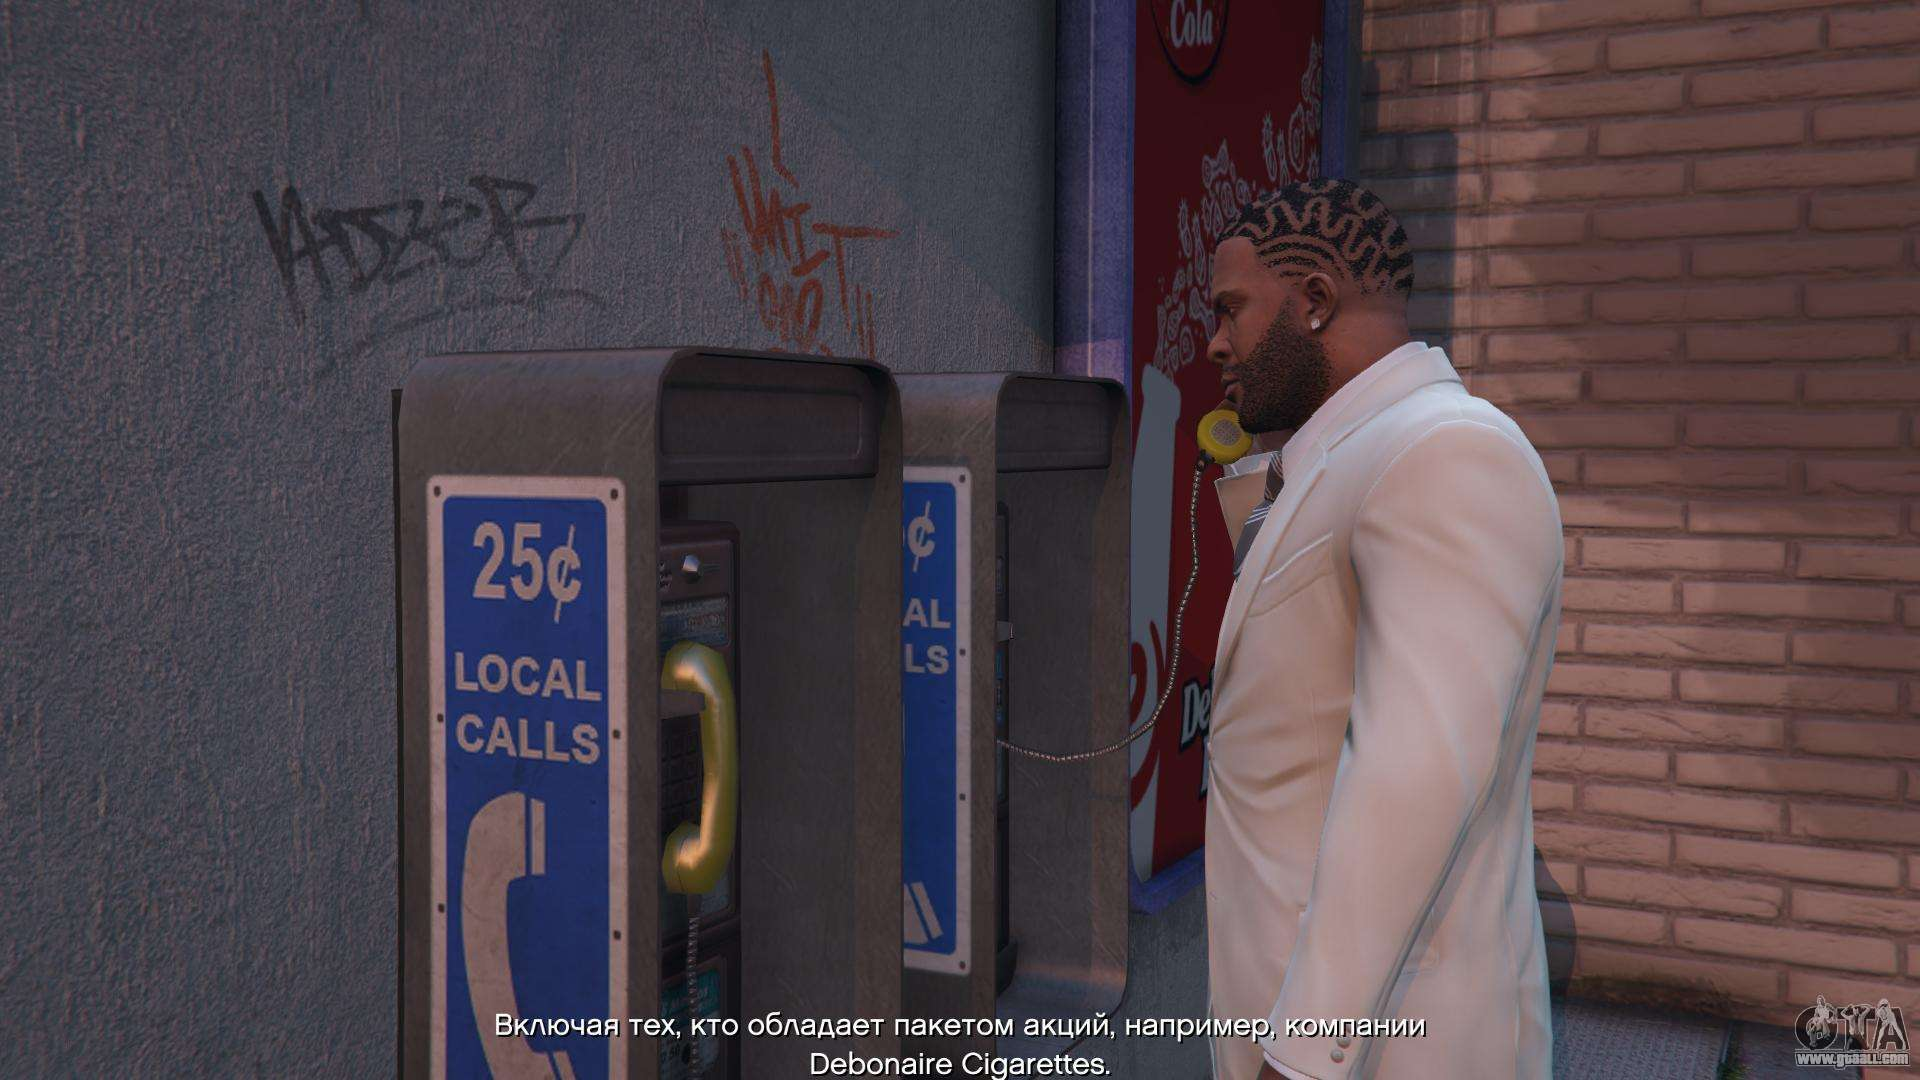 The Mission About The Shares On The Stock Market In Gta 5  Debonaire  Cigarettes